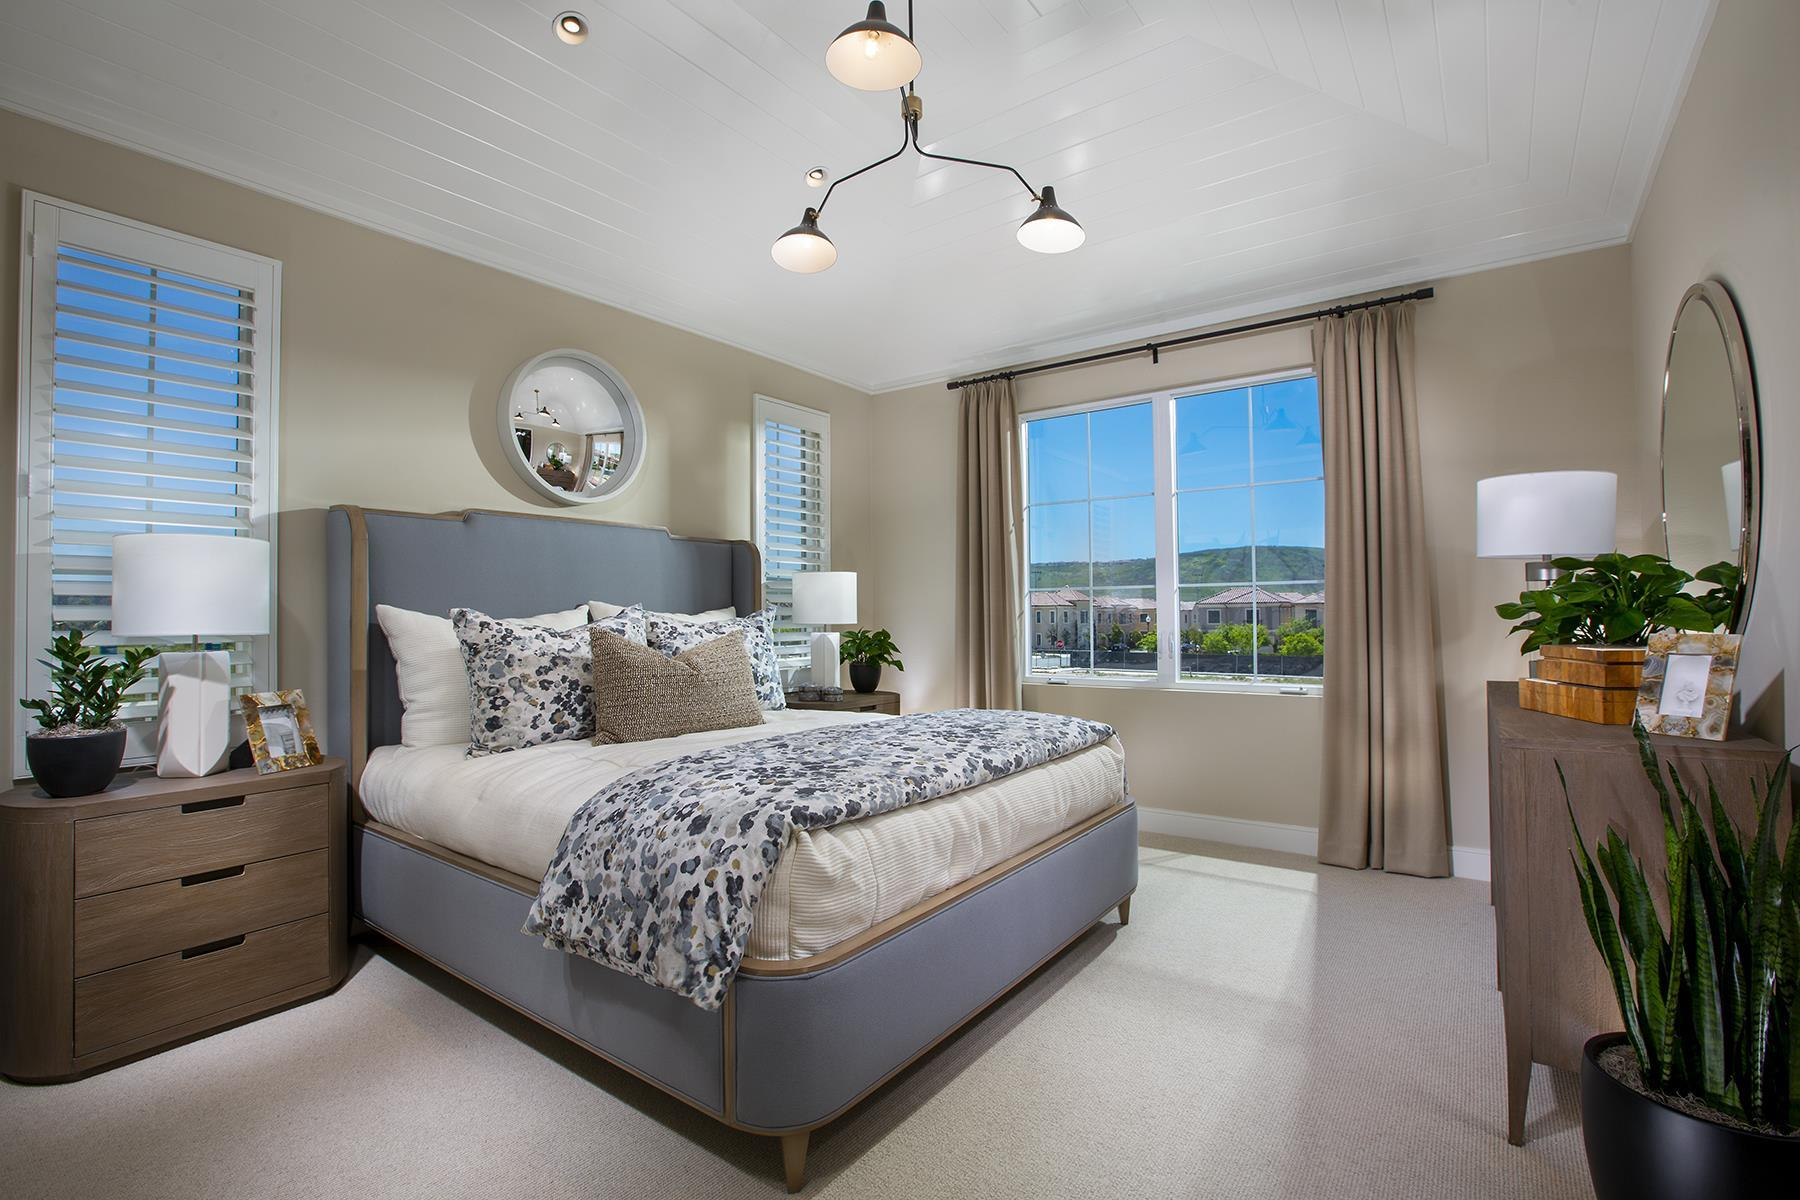 Bedroom featured in the Residence 4 By Irvine Pacific in Orange County, CA